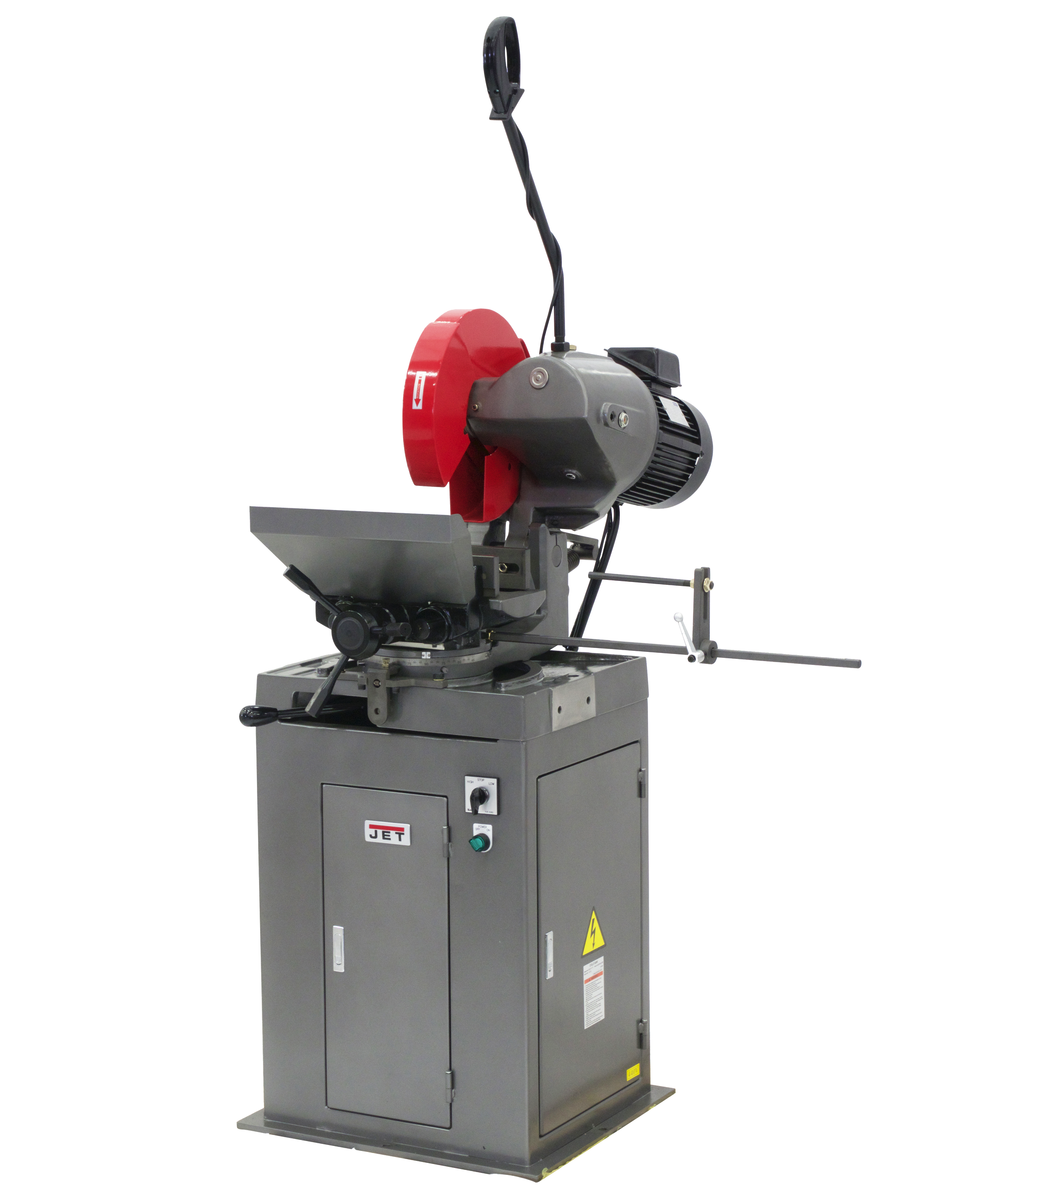 J-FK350-4K, 350mm Ferrous Manual Cold Saw